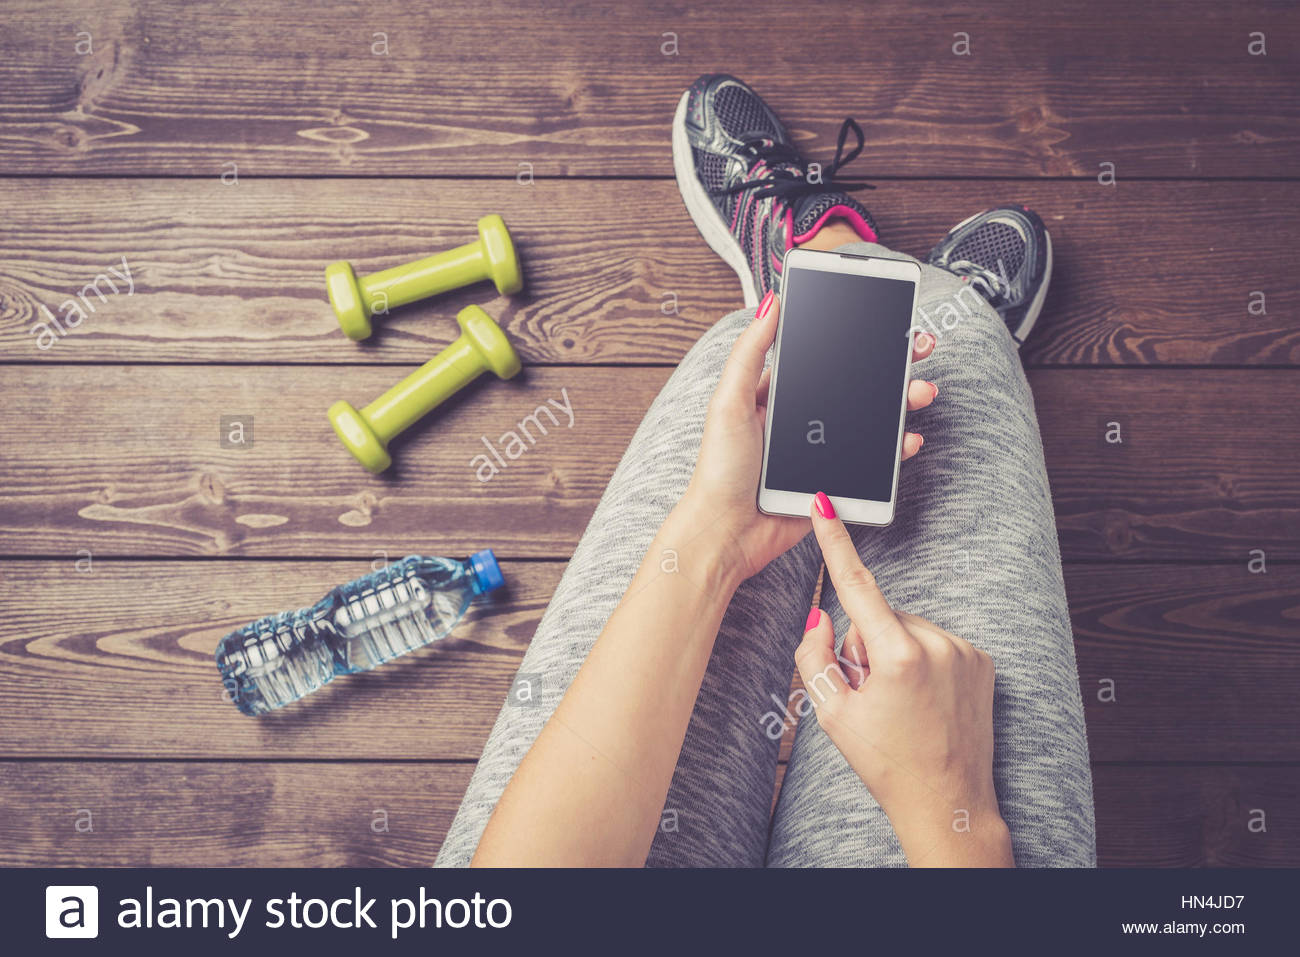 Weight Loss with Modern Devices - Stock Image